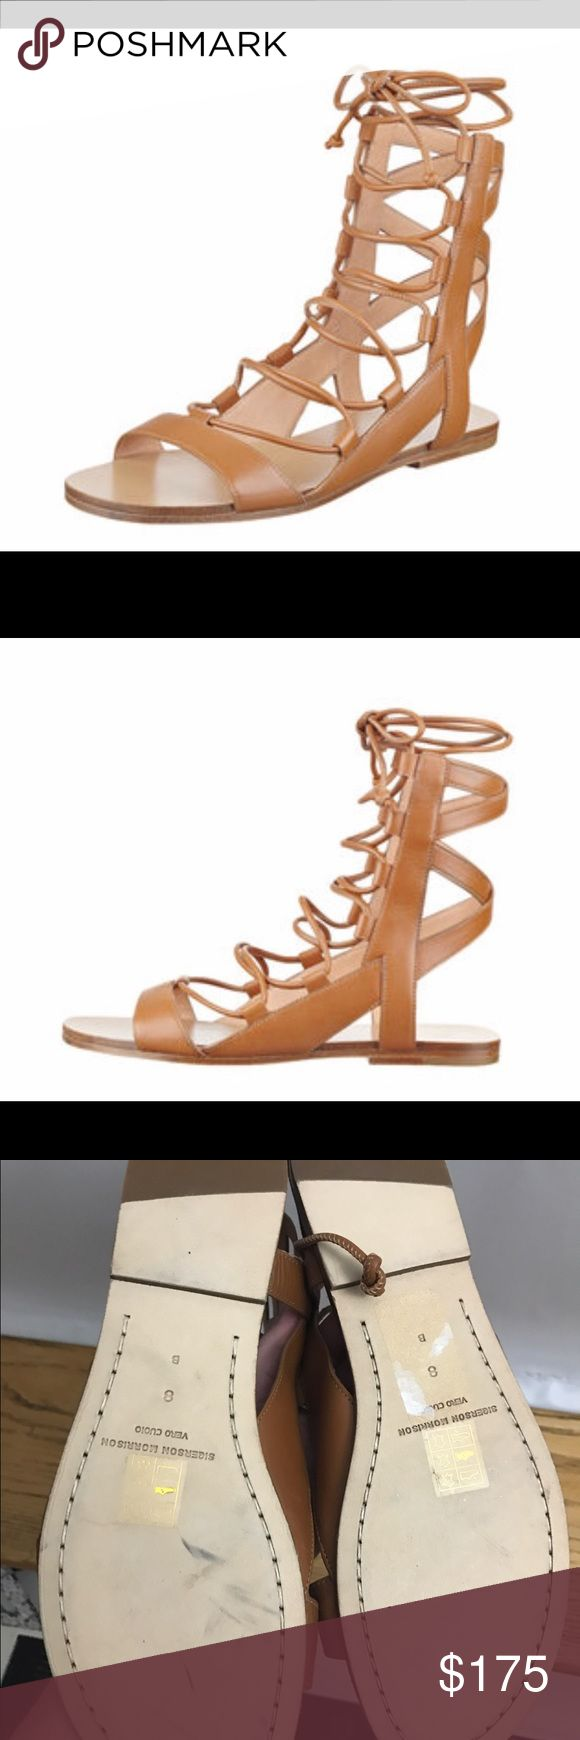 Sigerson Morrison size 8 tan leather gladiator Sigerson Morrison size 8 tan leather gladiator sandal. New with minimal scuff marks on the bottom. Never been worn, in great condition and perfect for summer! Sigerson Morrison Shoes Sandals